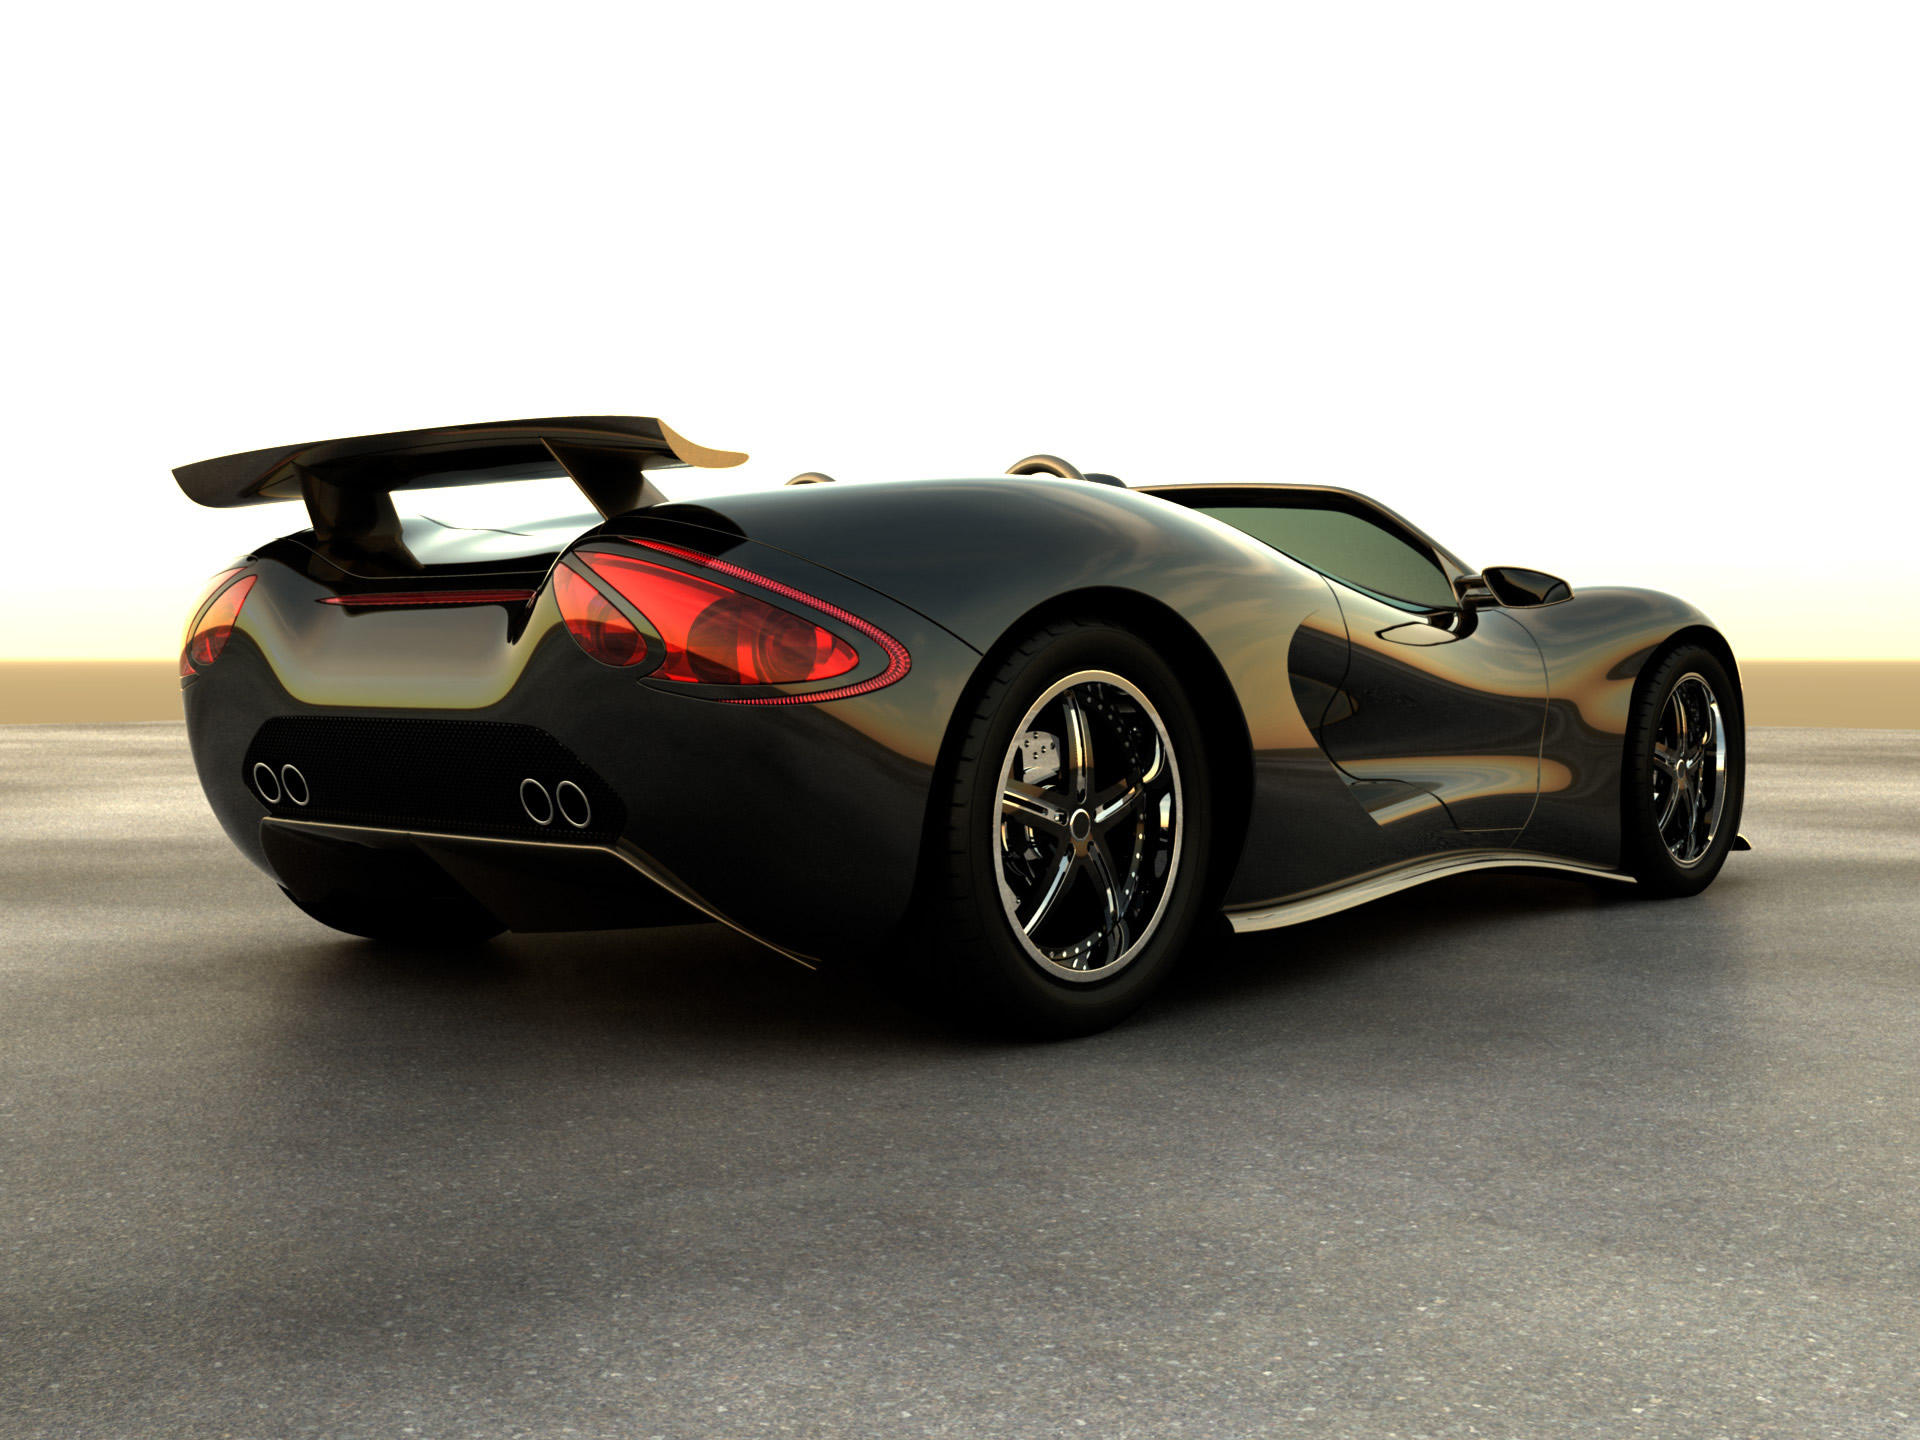 Eco Exotic Scorpiontm Supercar Picture 10386